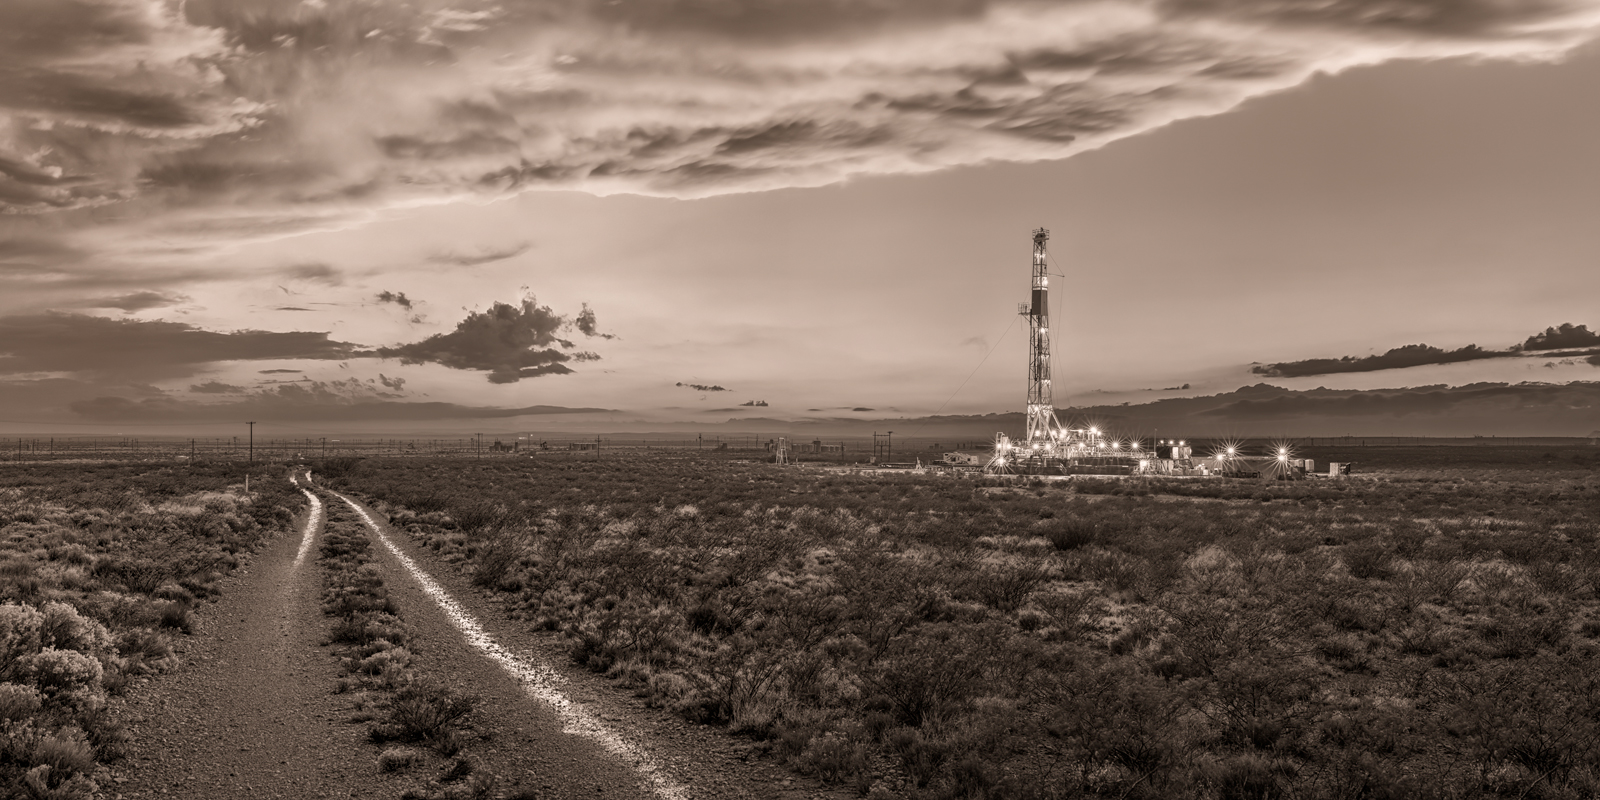 Drilling rig, Delaware Basin, Rain, Thunderstorm, evening, New Mexico, Carlsbad, Artesia, Silver Oak, Rig 1, panorama, high resolution, mural, fine art mural, October, monsoon, black & white, sepia , photo